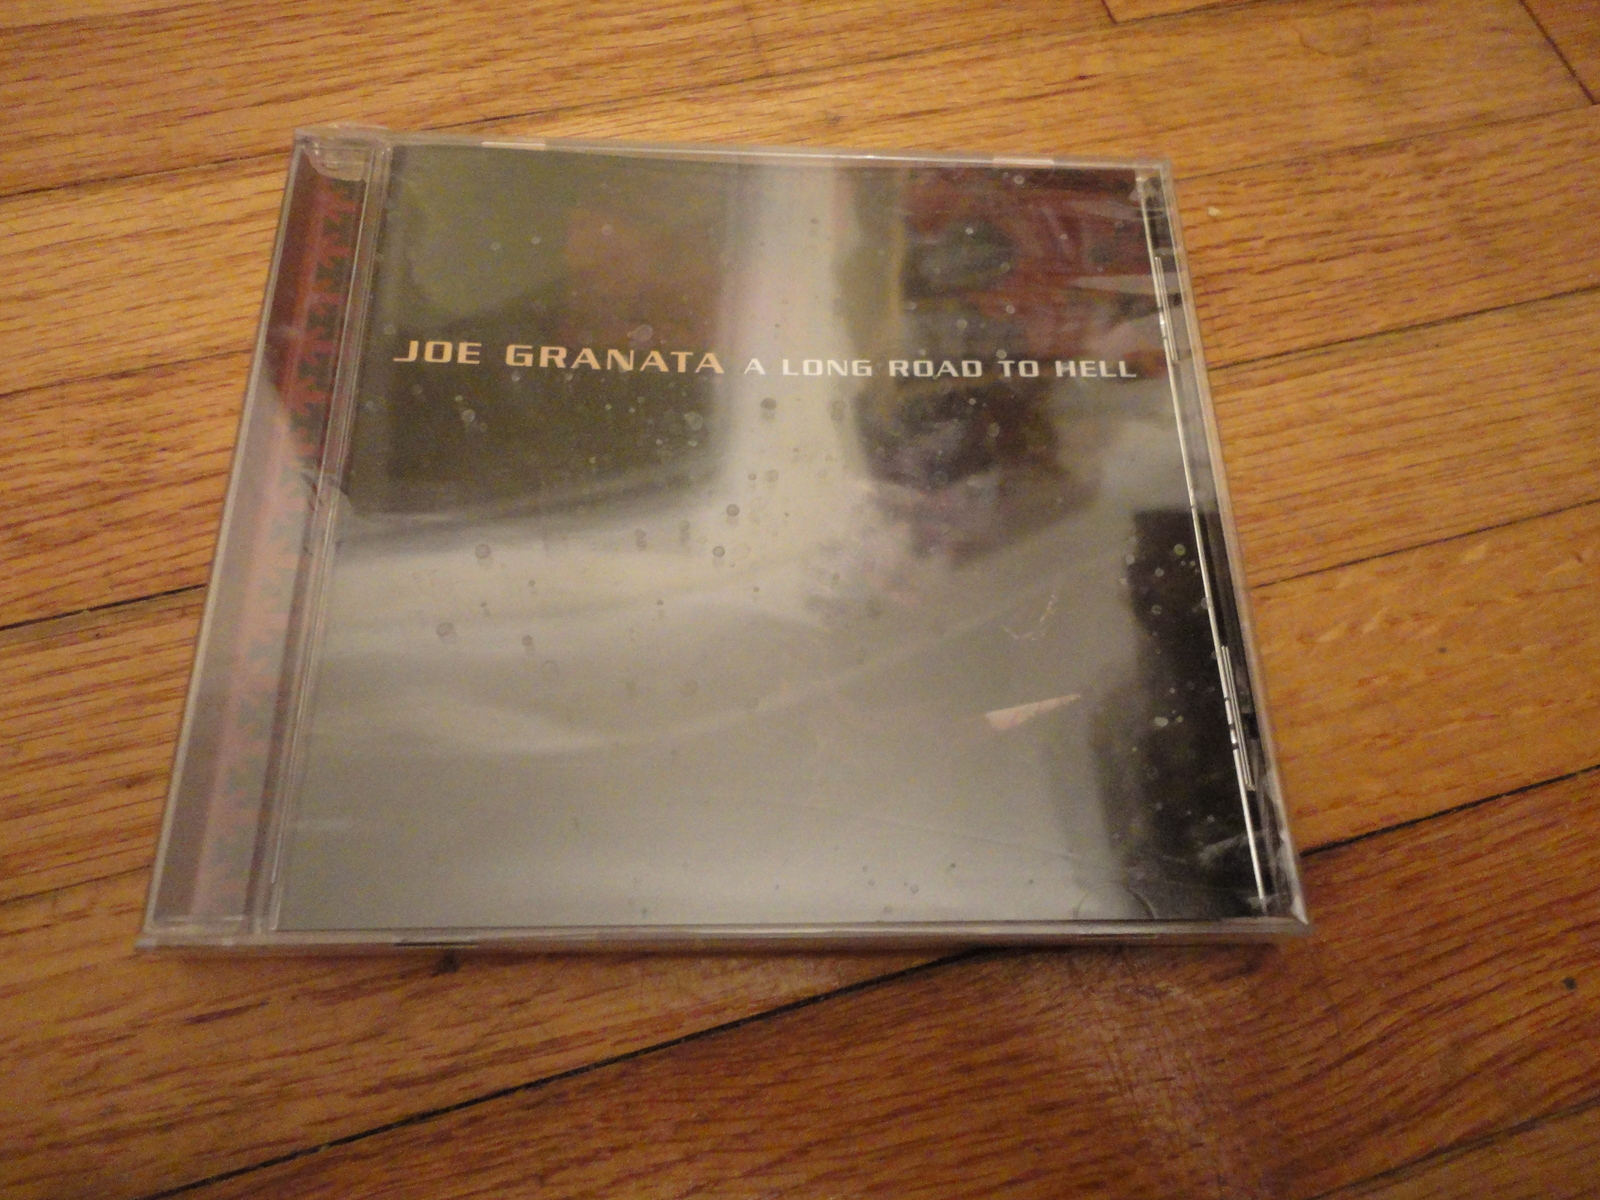 Primary image for CD Joe Granata 'A Long Road to Hell' new sealed 2007 shred guitar heavy metal